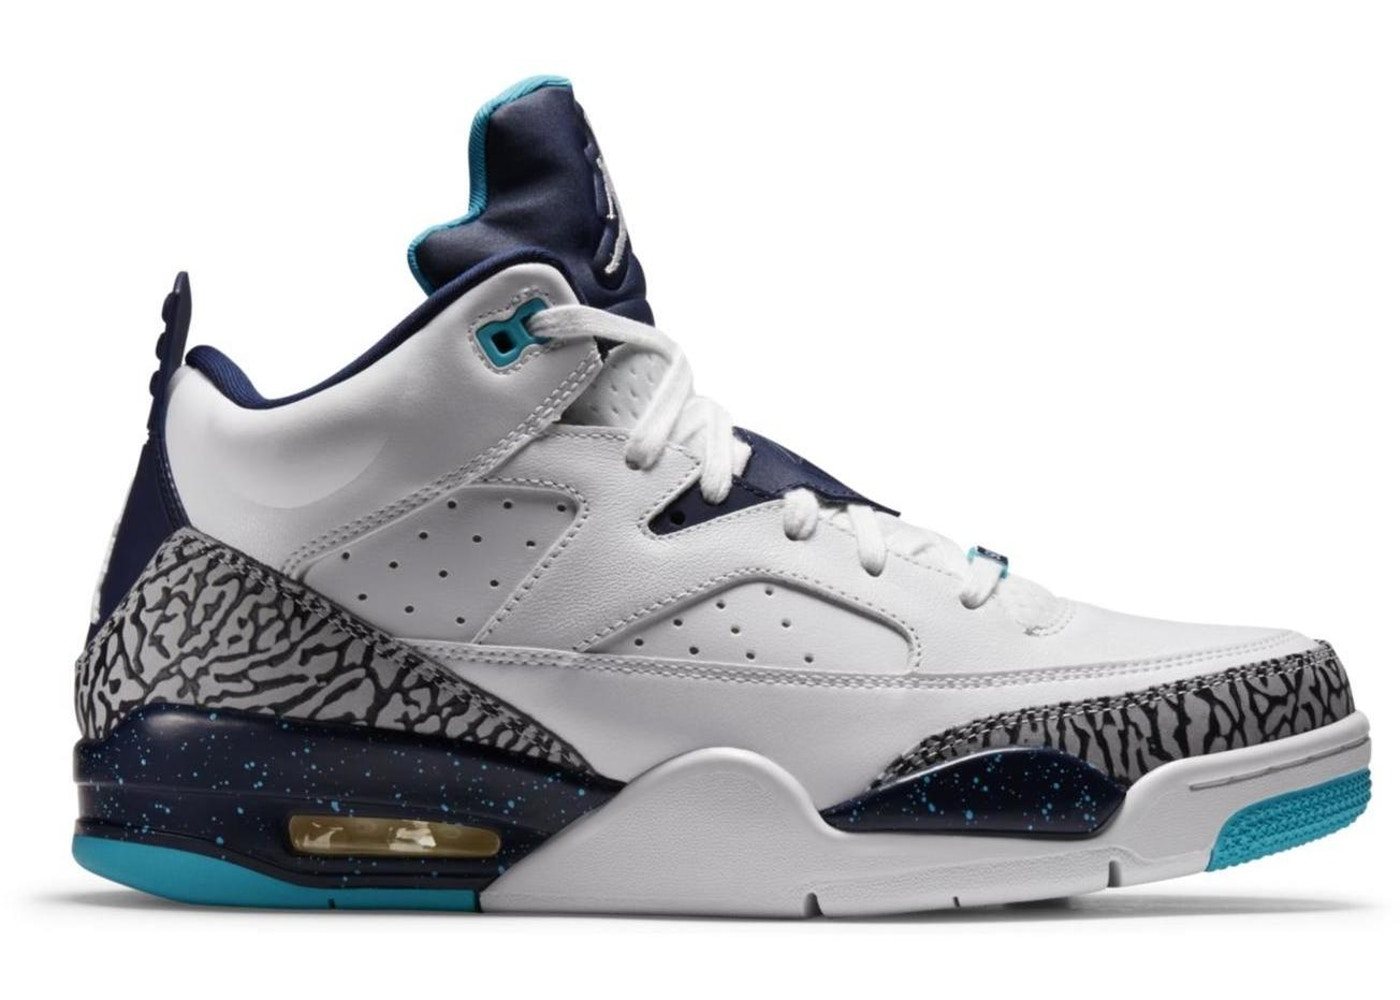 new style a2e38 4d39a Jordan Son of Mars Low Hornets